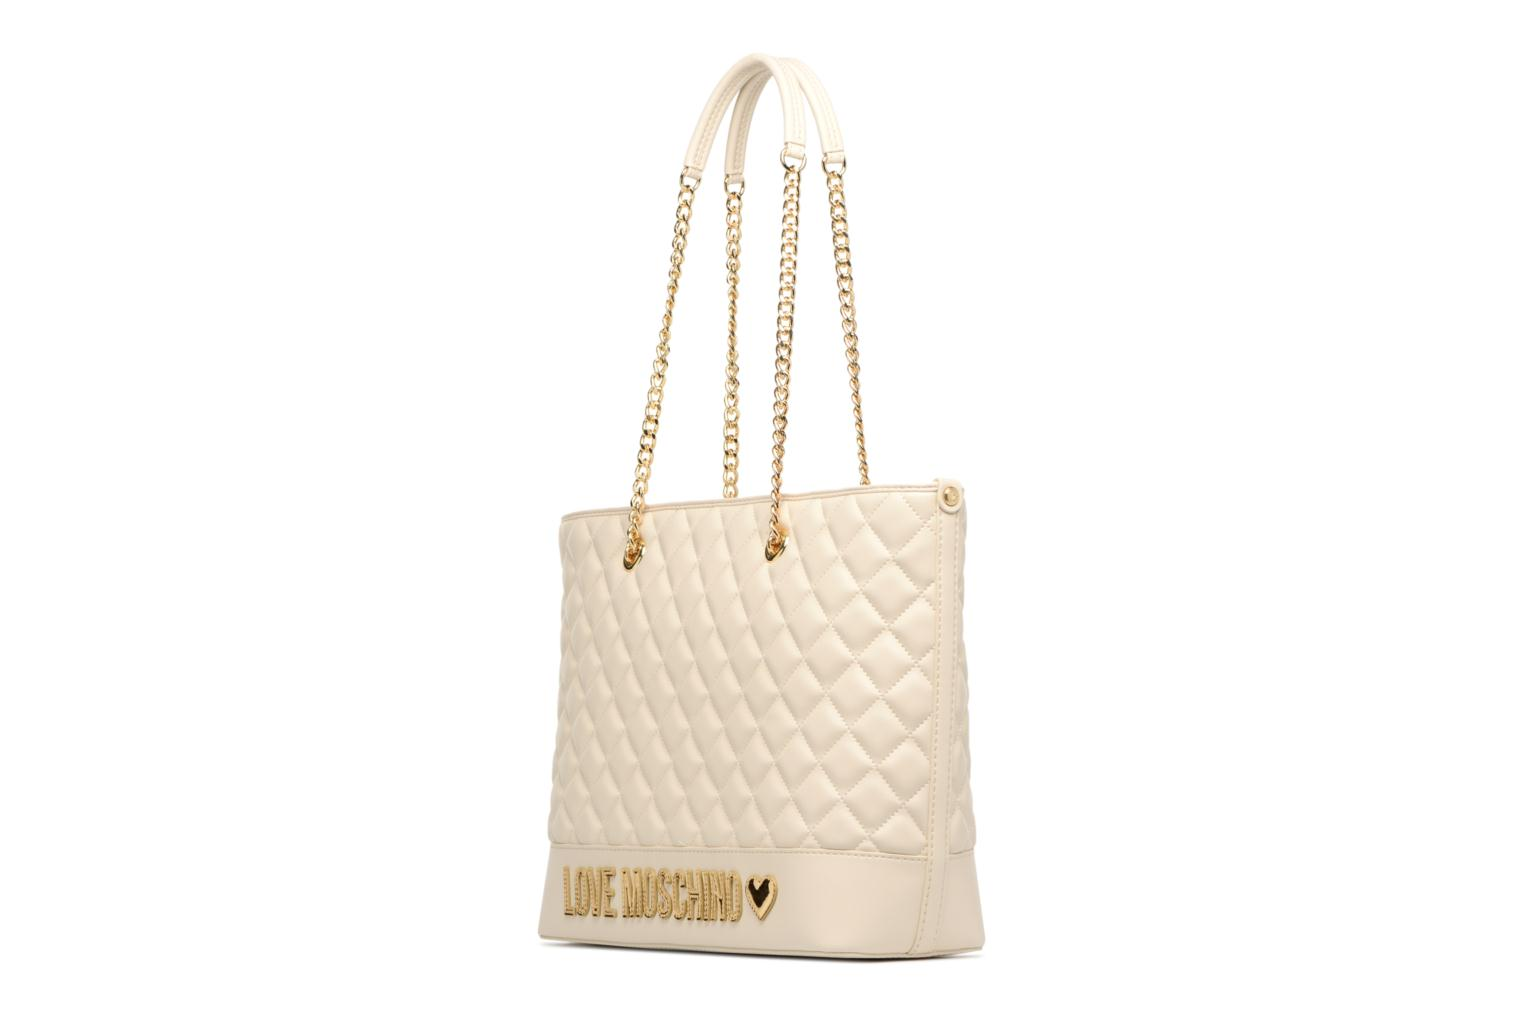 Sacs à main Love Moschino Cabas Chaine Super Quilted Blanc vue portées chaussures